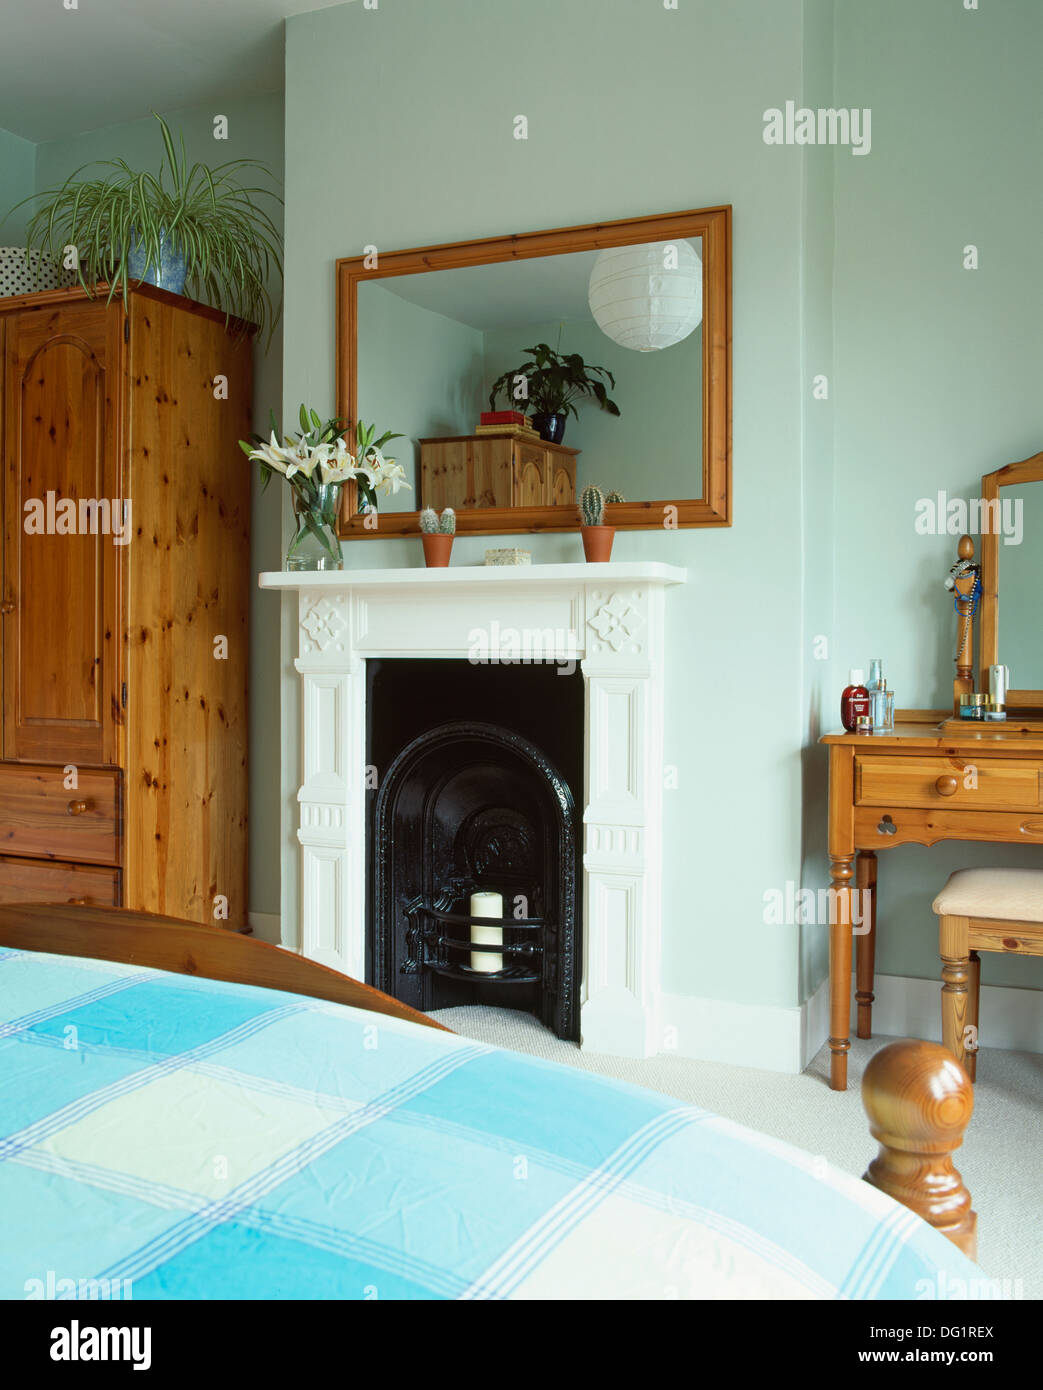 Simple wooden framed mirror above fireplace in townhouse bedroom ...